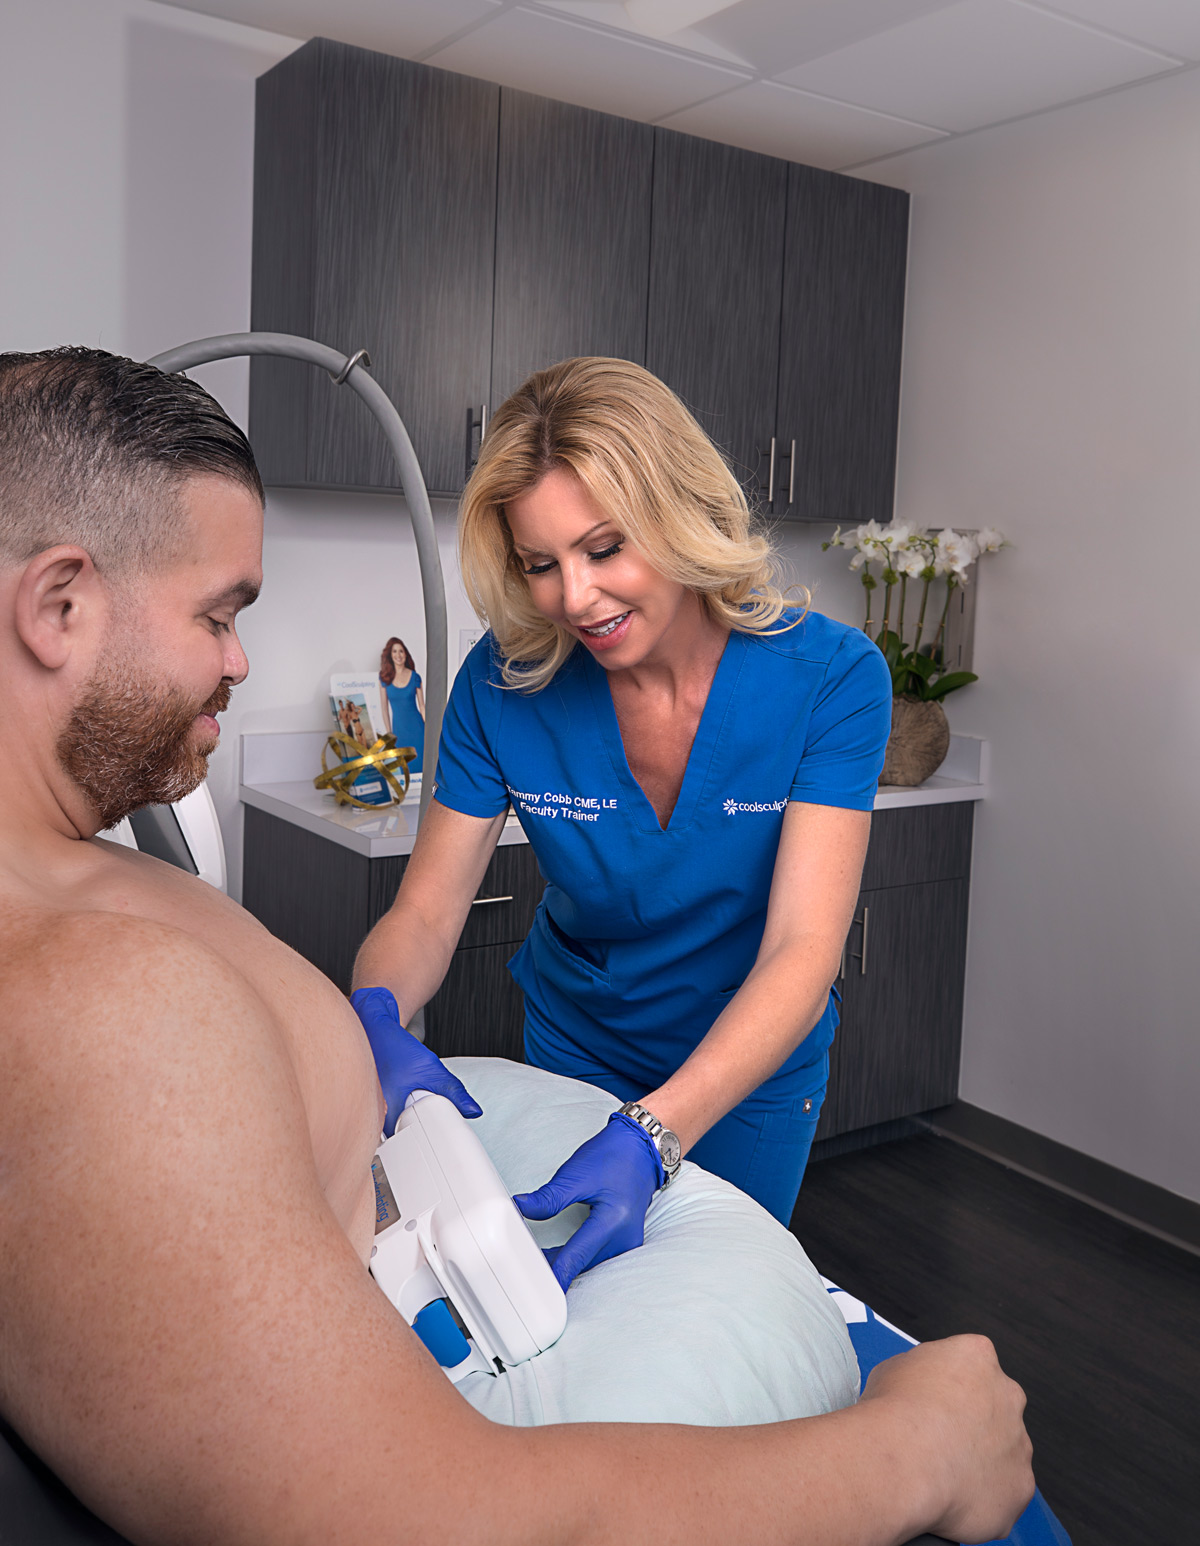 Tammy Cobb, aesthetics specialist, performing CoolSculpting treatment for patient at Riverchase Dermatology in Miami, FL.